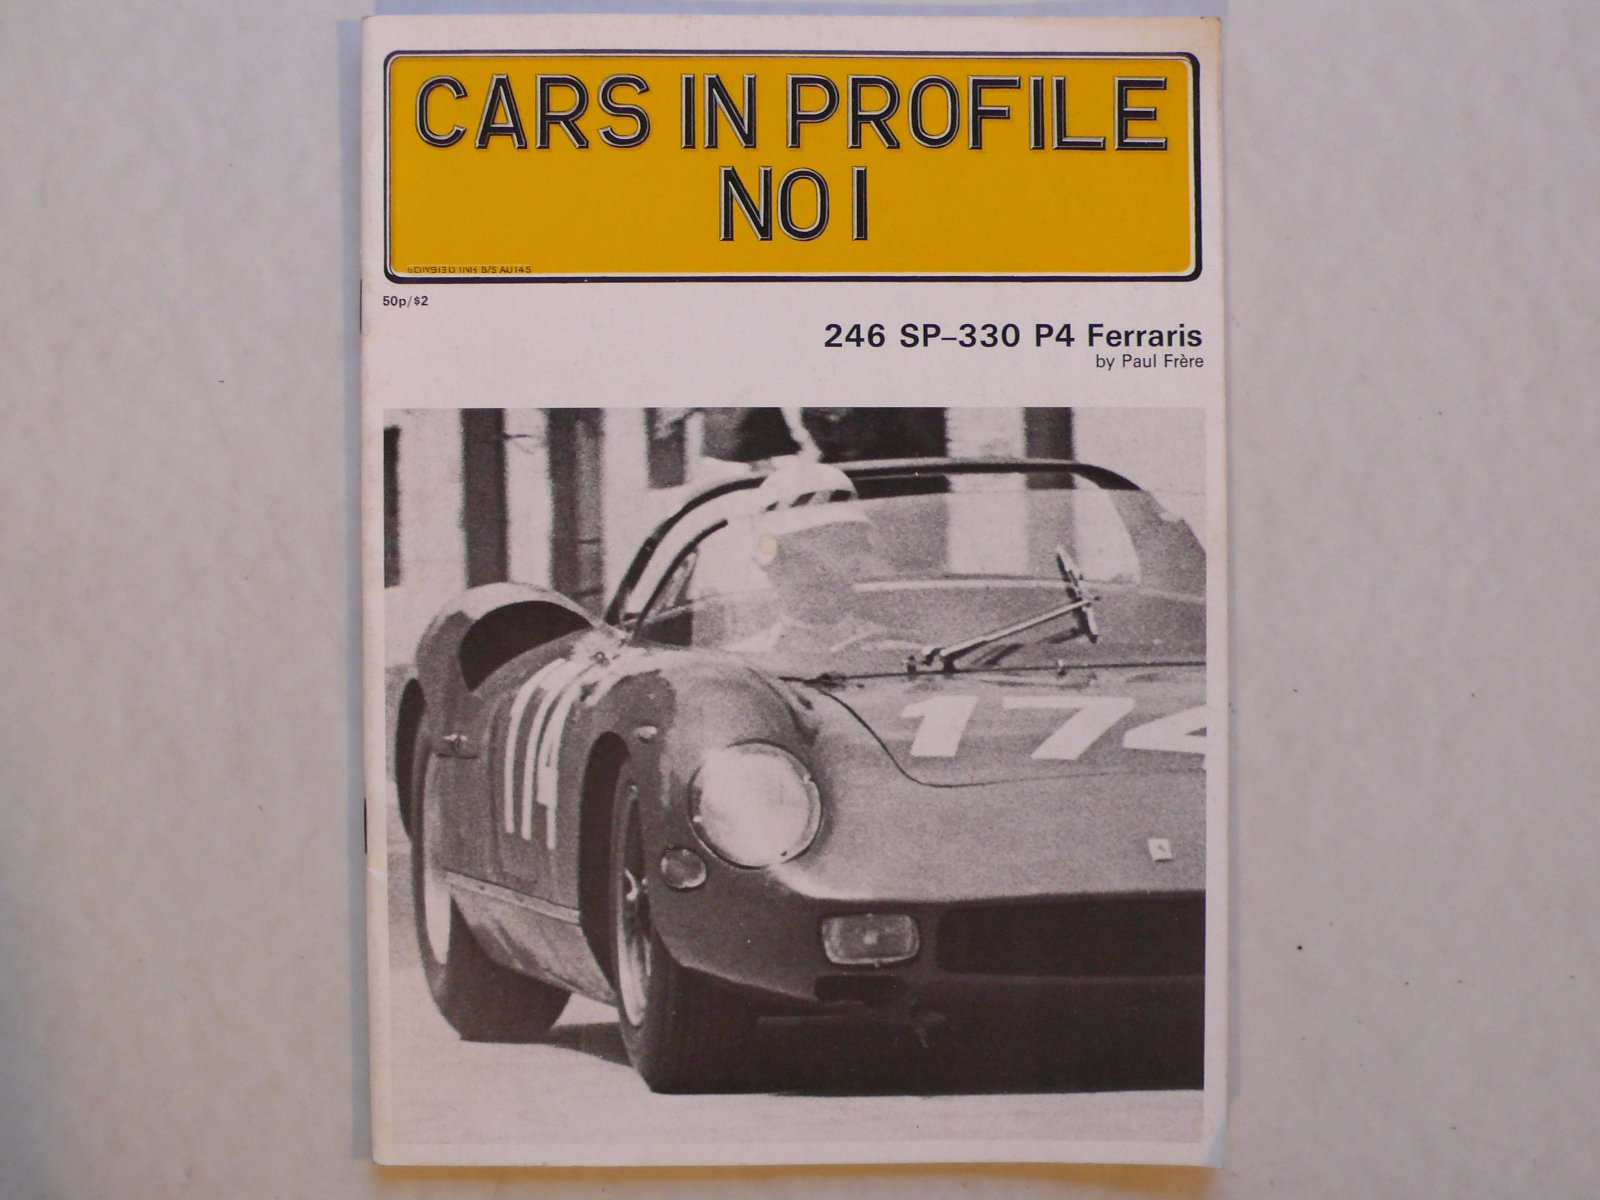 Cars in Profile No. 1: 246 SP - 330 P4 Ferraris